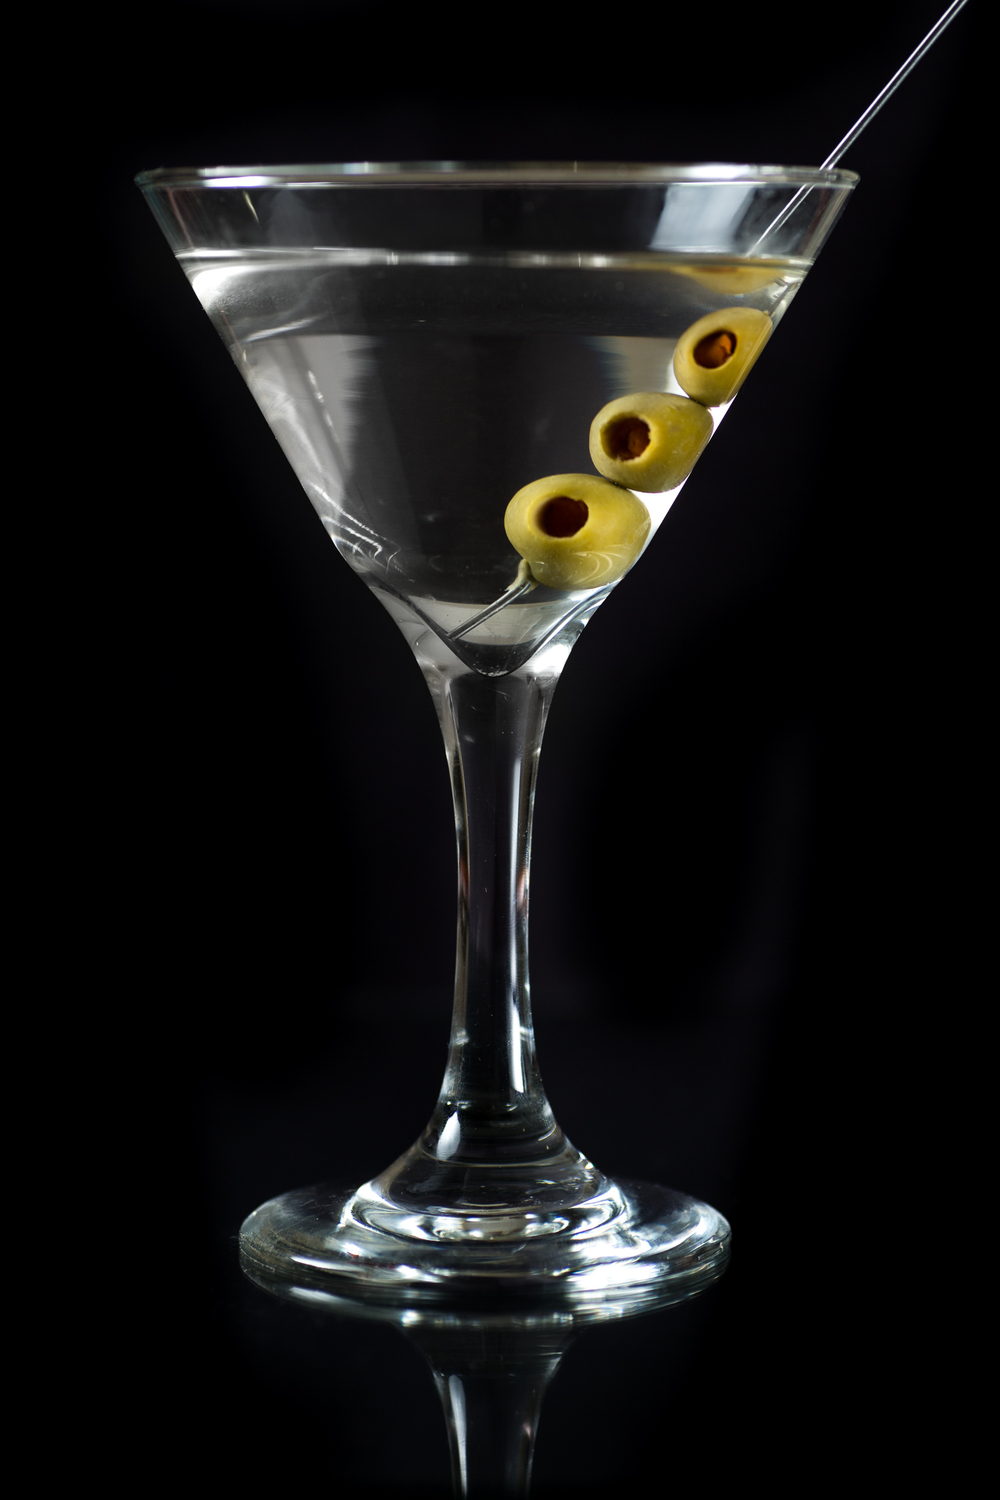 Kansas City Food Photographer - Martini - Cocktails - Restaurant